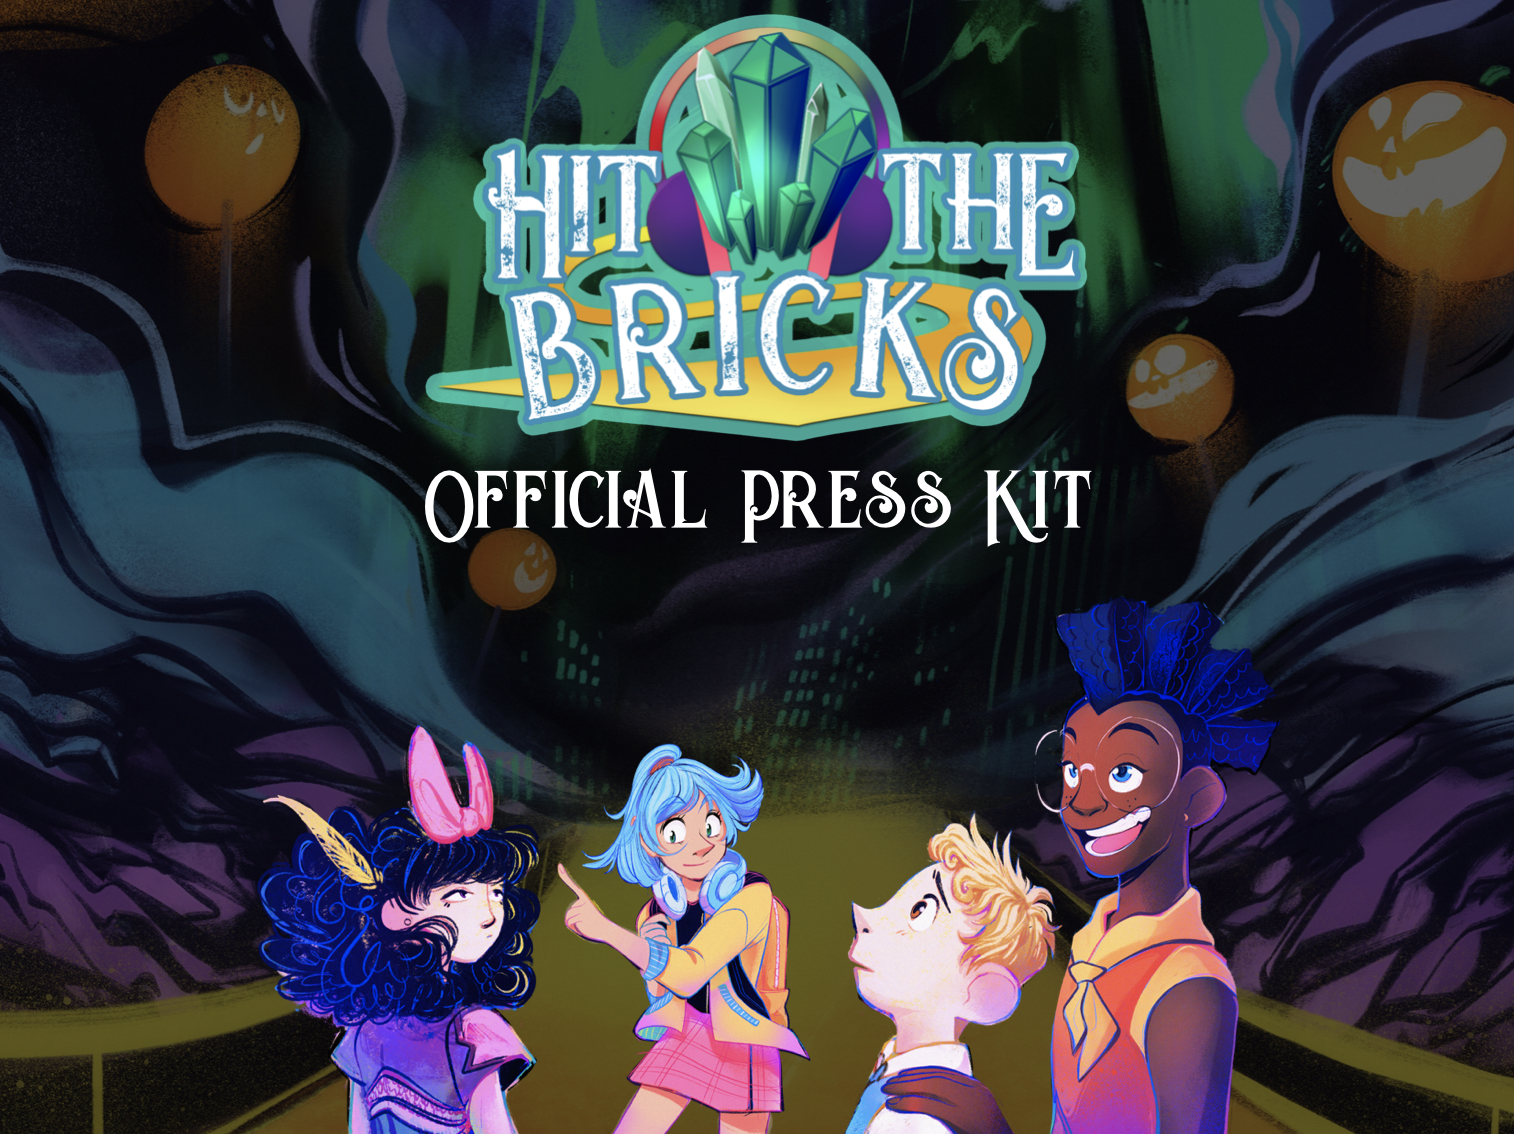 Download the Press Kit Here -